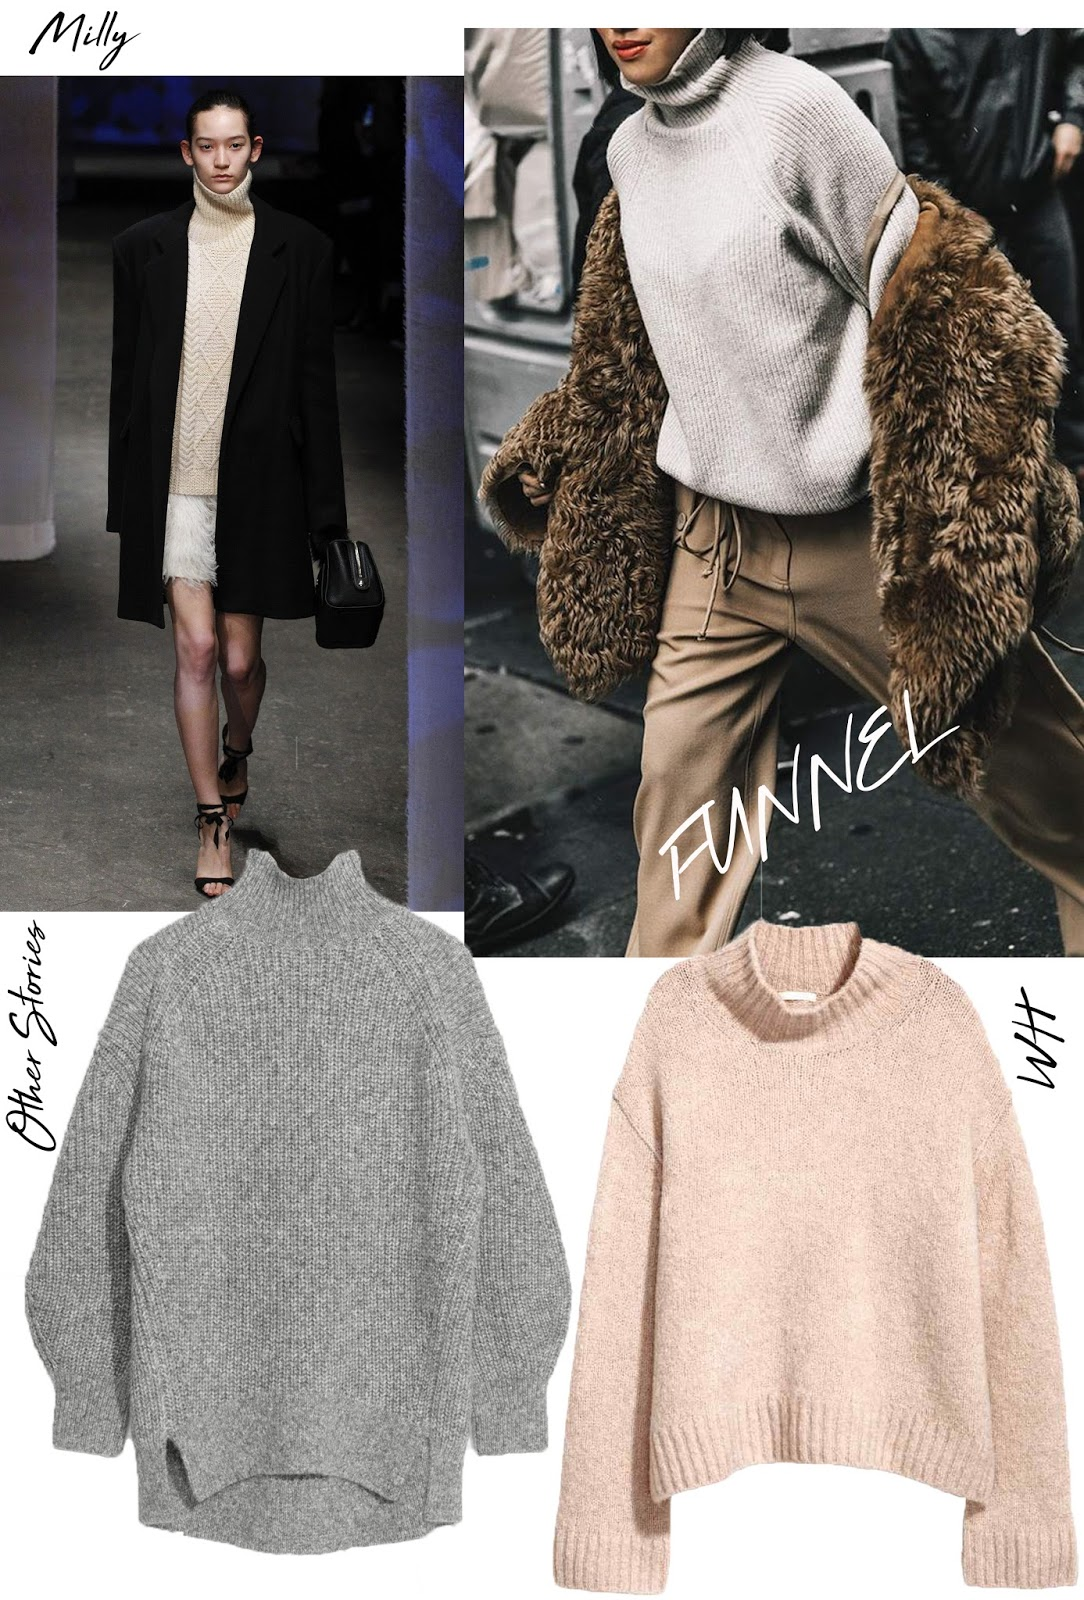 Fashion Week, AW17, Shopping Guide, Knitwear, Trends, Fashion,